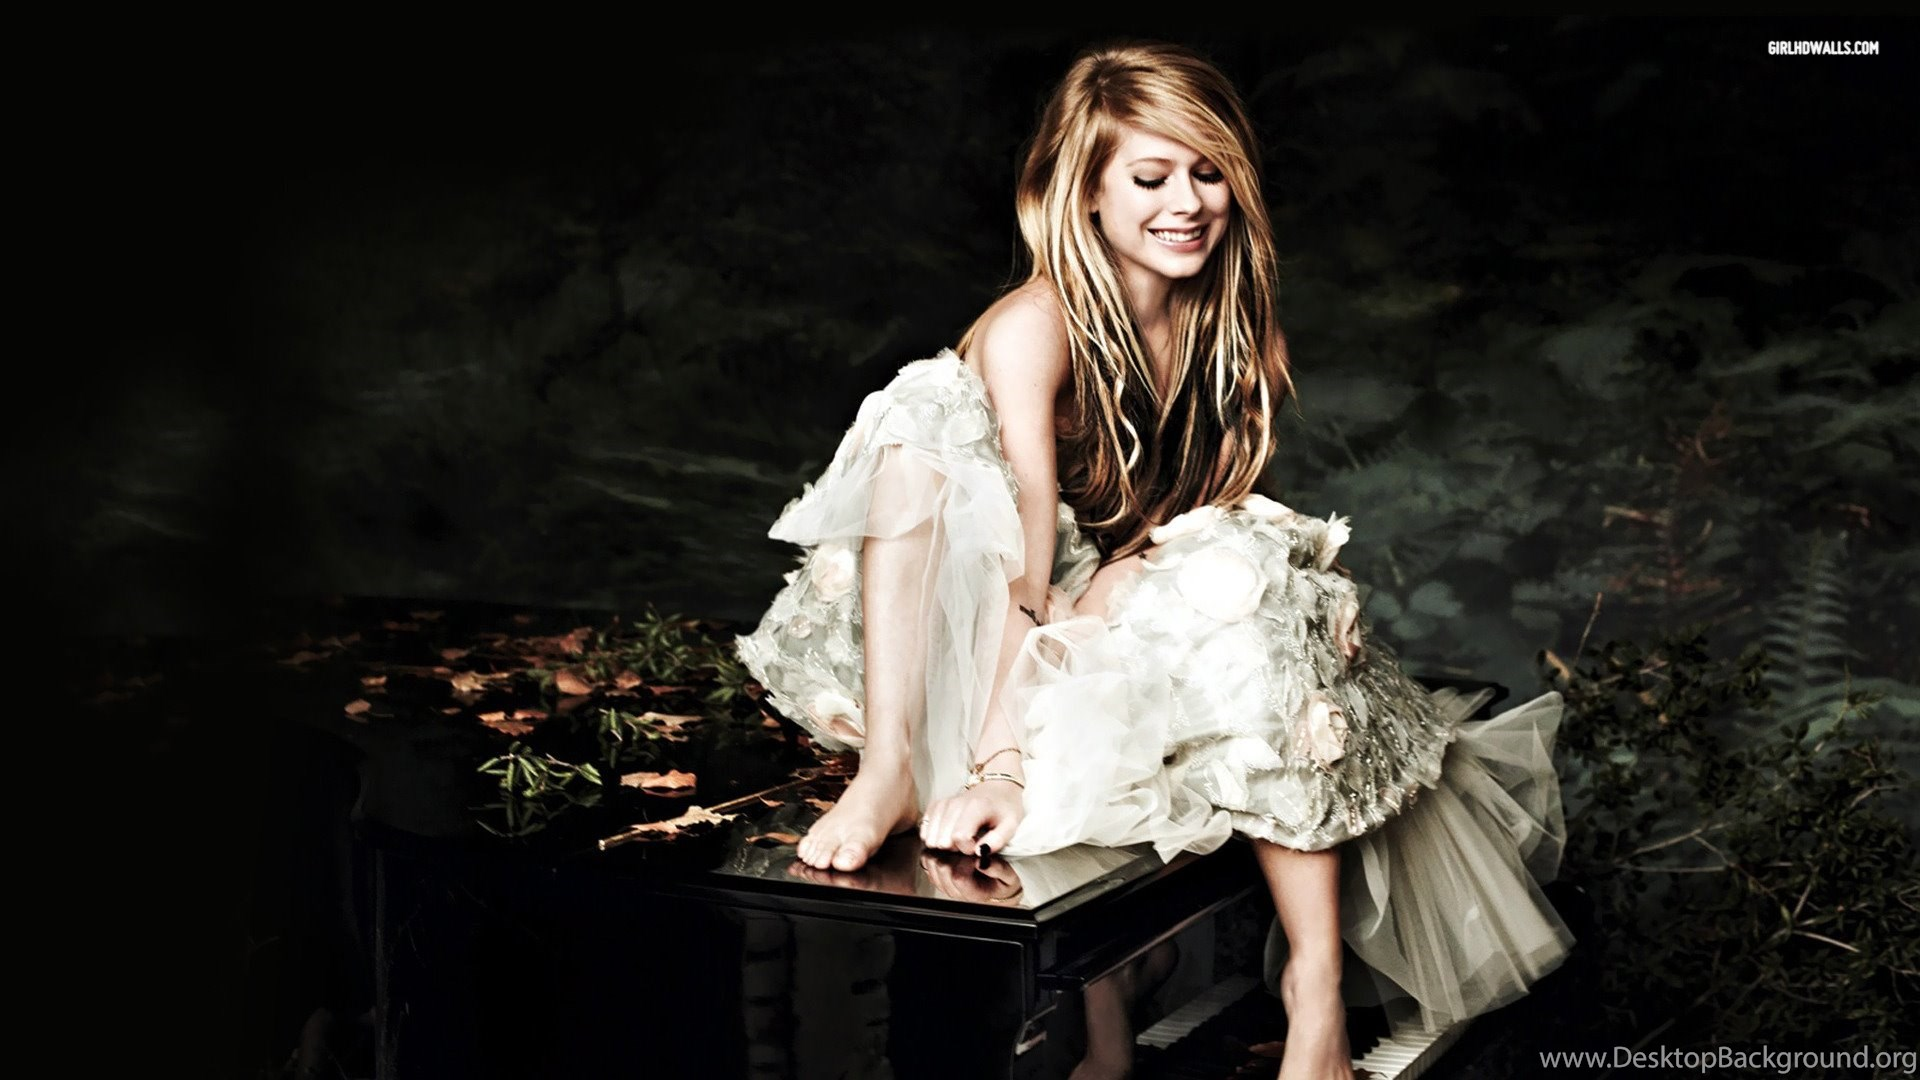 Avril Lavigne Wish You Were Here Wallpapers Desktop Background